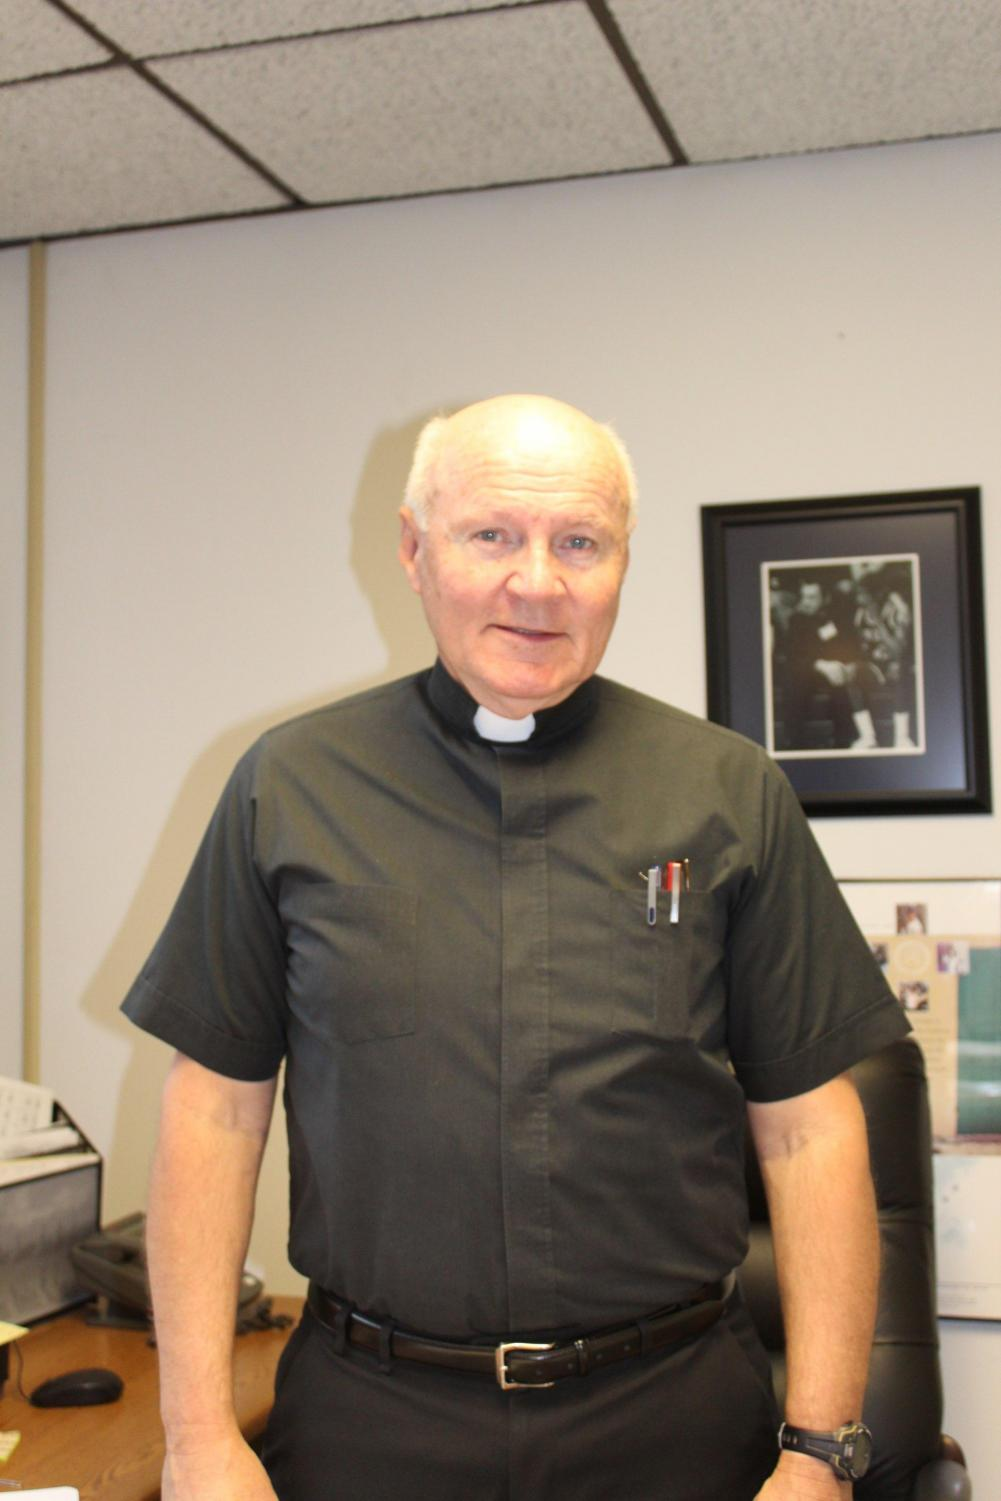 Fr. Dan Hall, history teacher, served in the Army and the Marines.